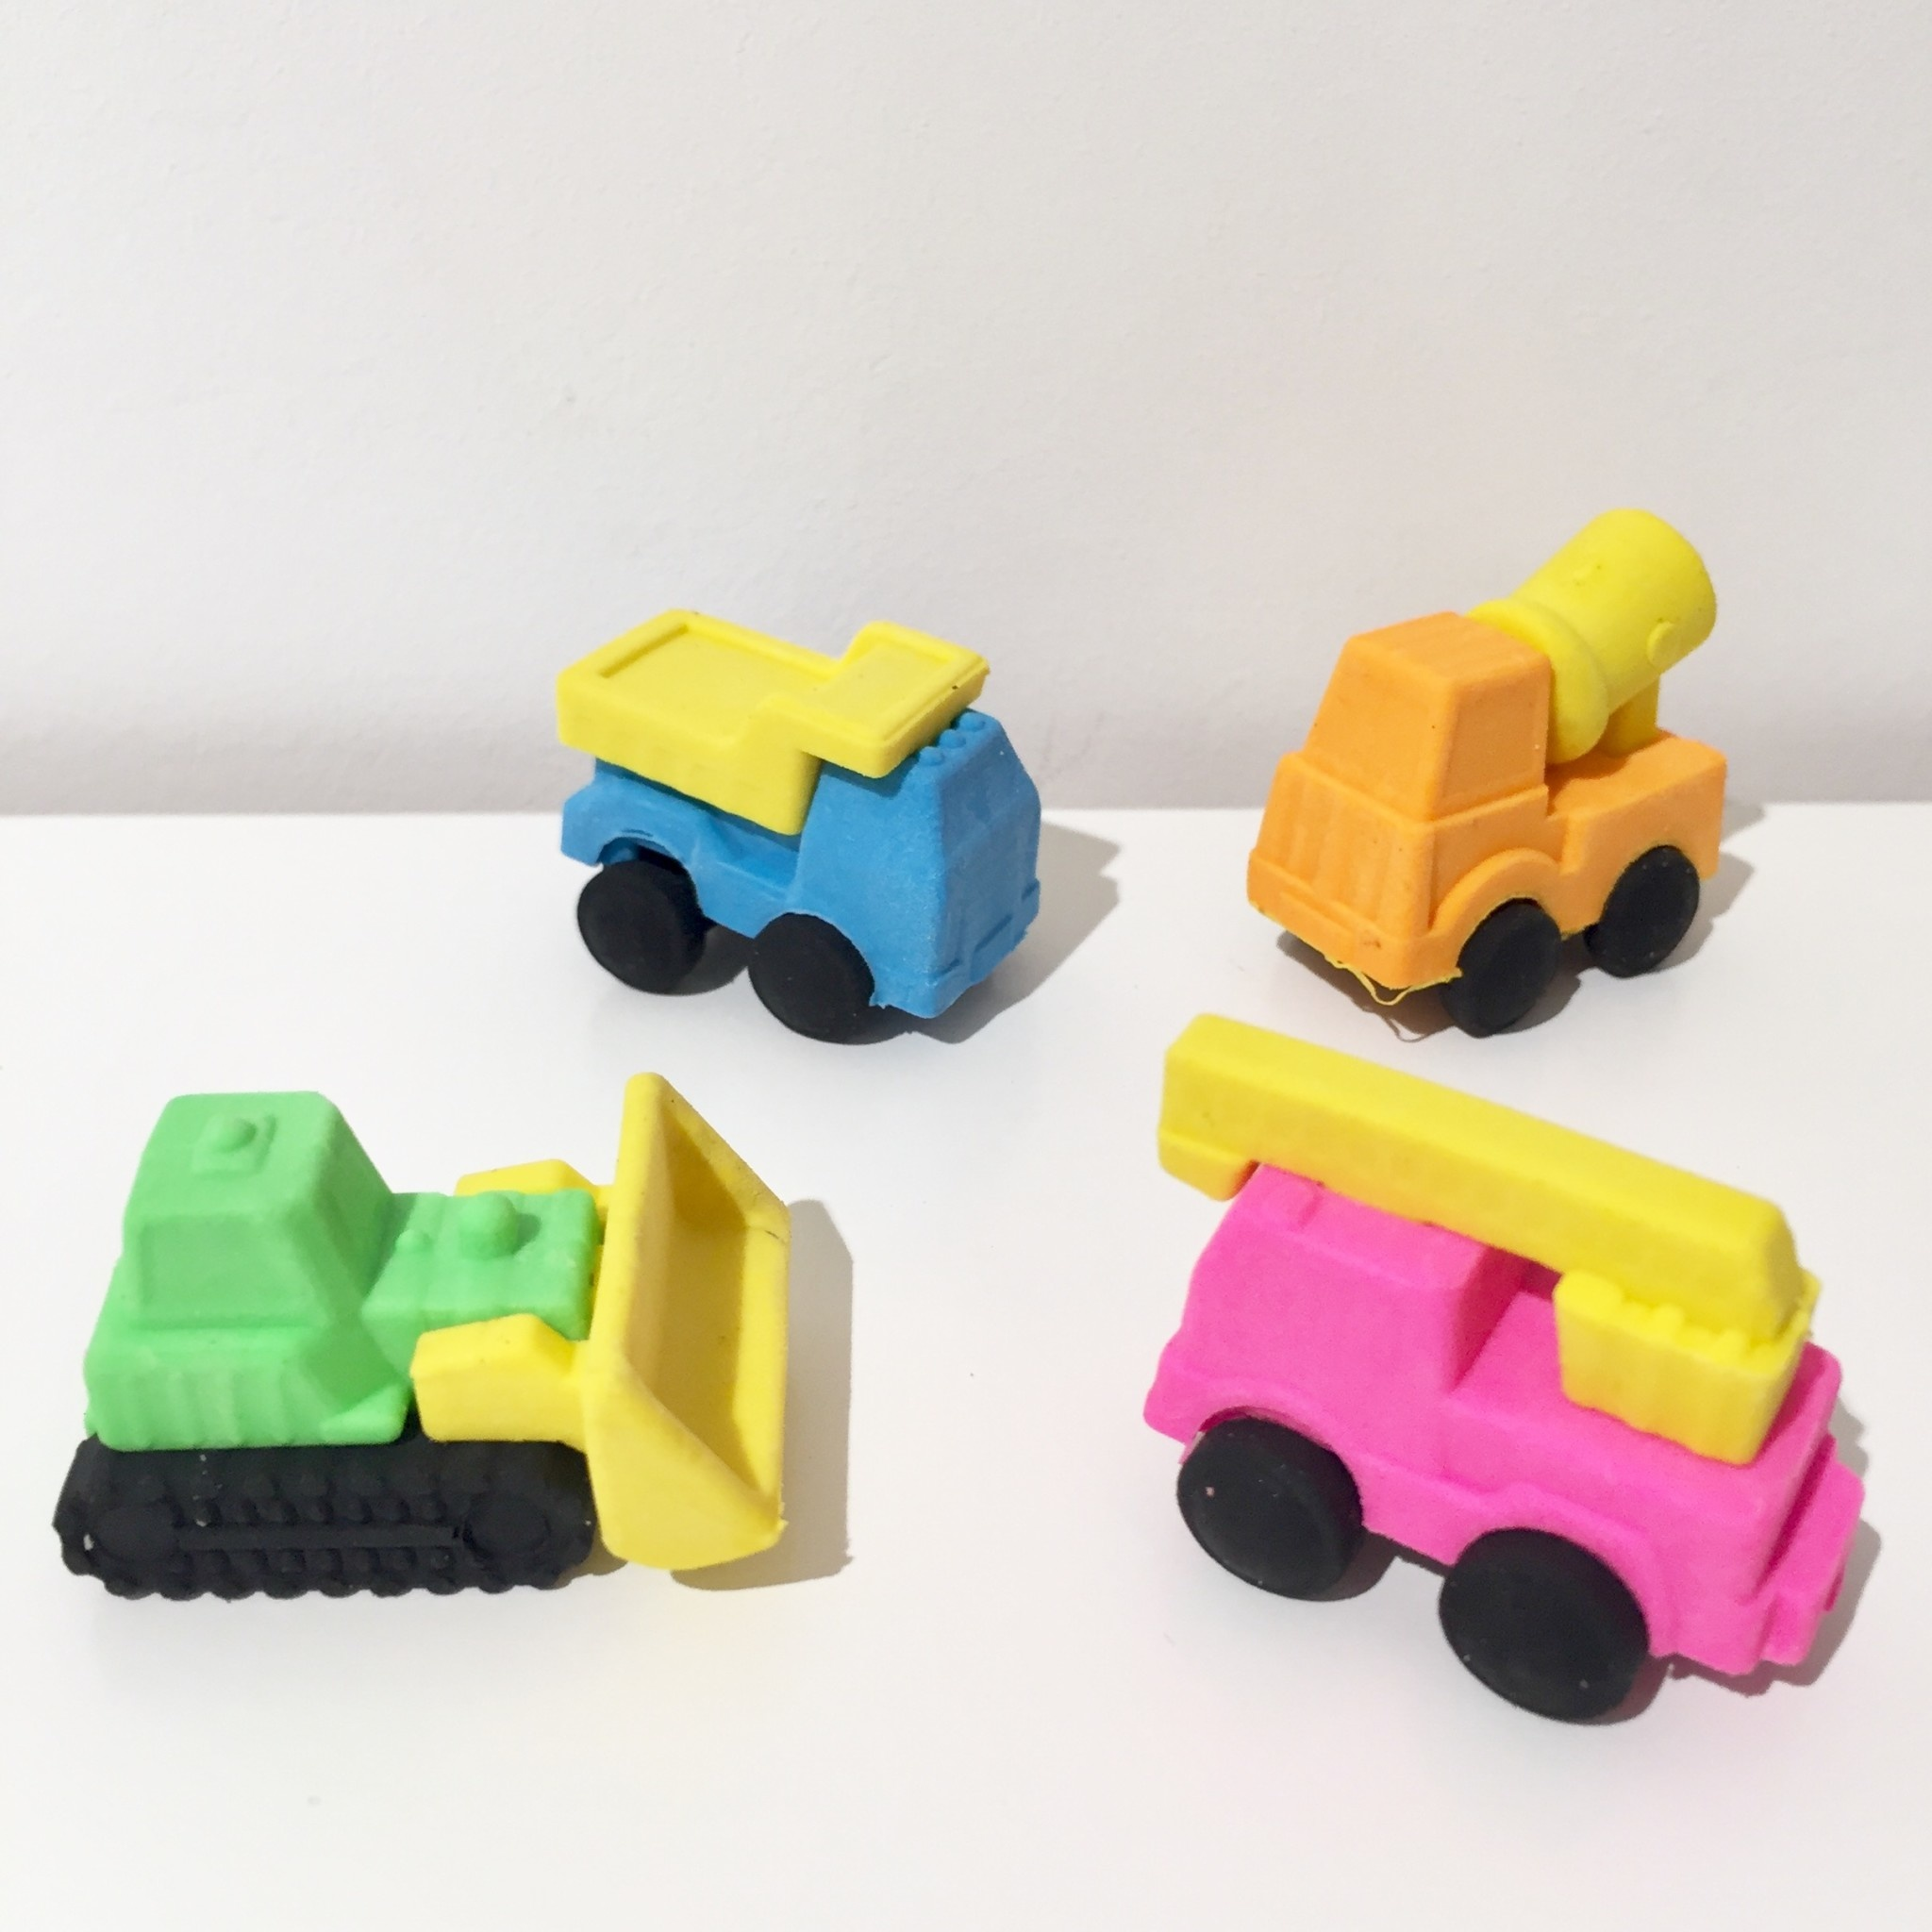 AG eraser construction vehicles